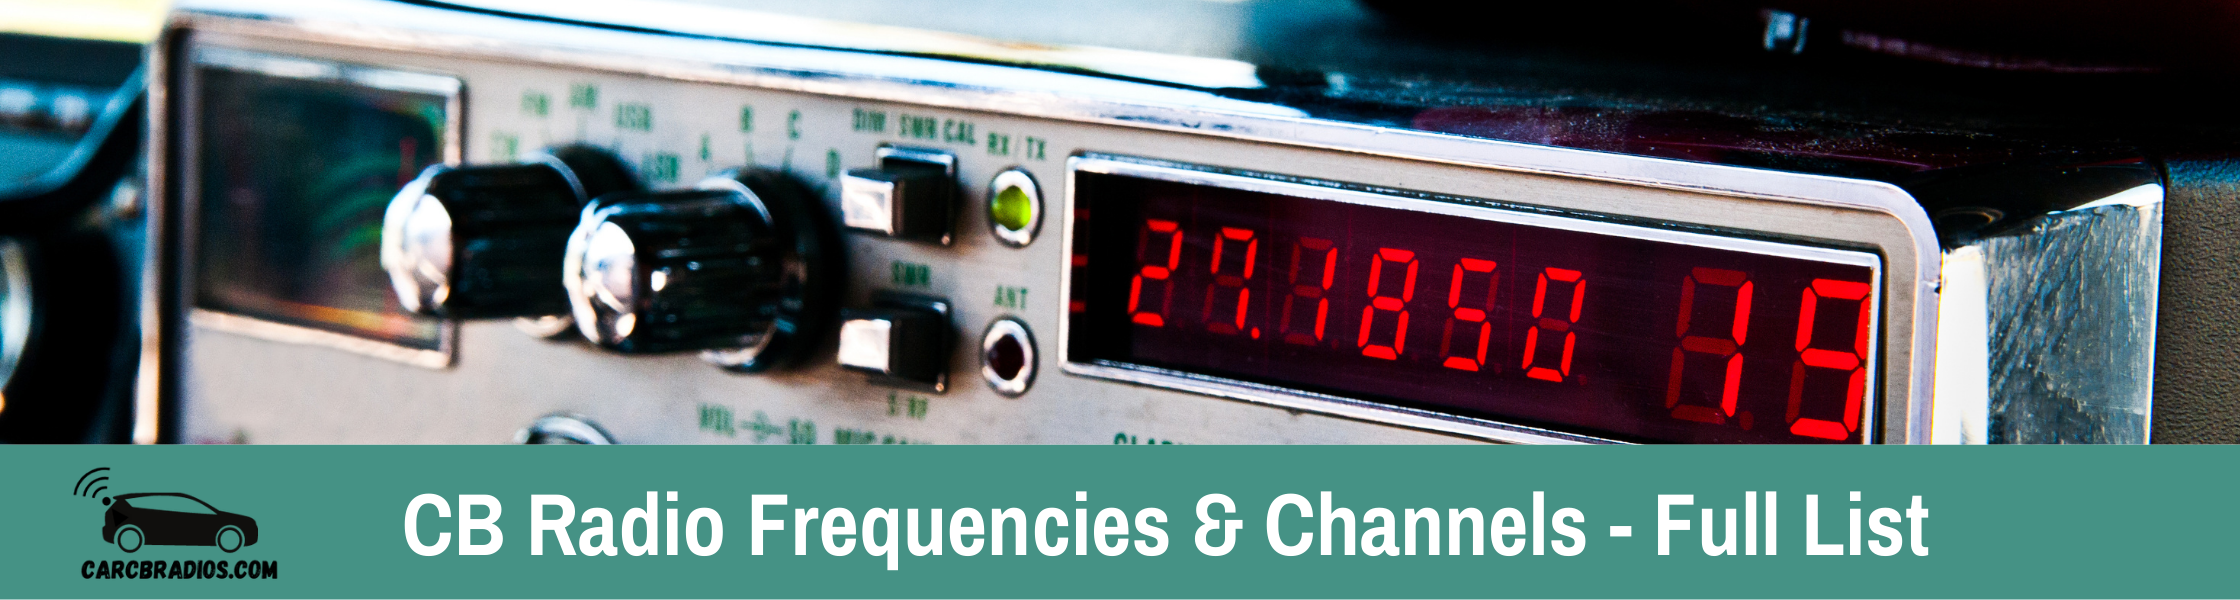 CB Radio has 40 channels with CB radio frequencies ranging from 26.965 to 27.405 MHz. Channels are generally spaced 10 MHz apart. The frequencies are listed in the table below. I have included different sets of channels used by people in various countries around the world.